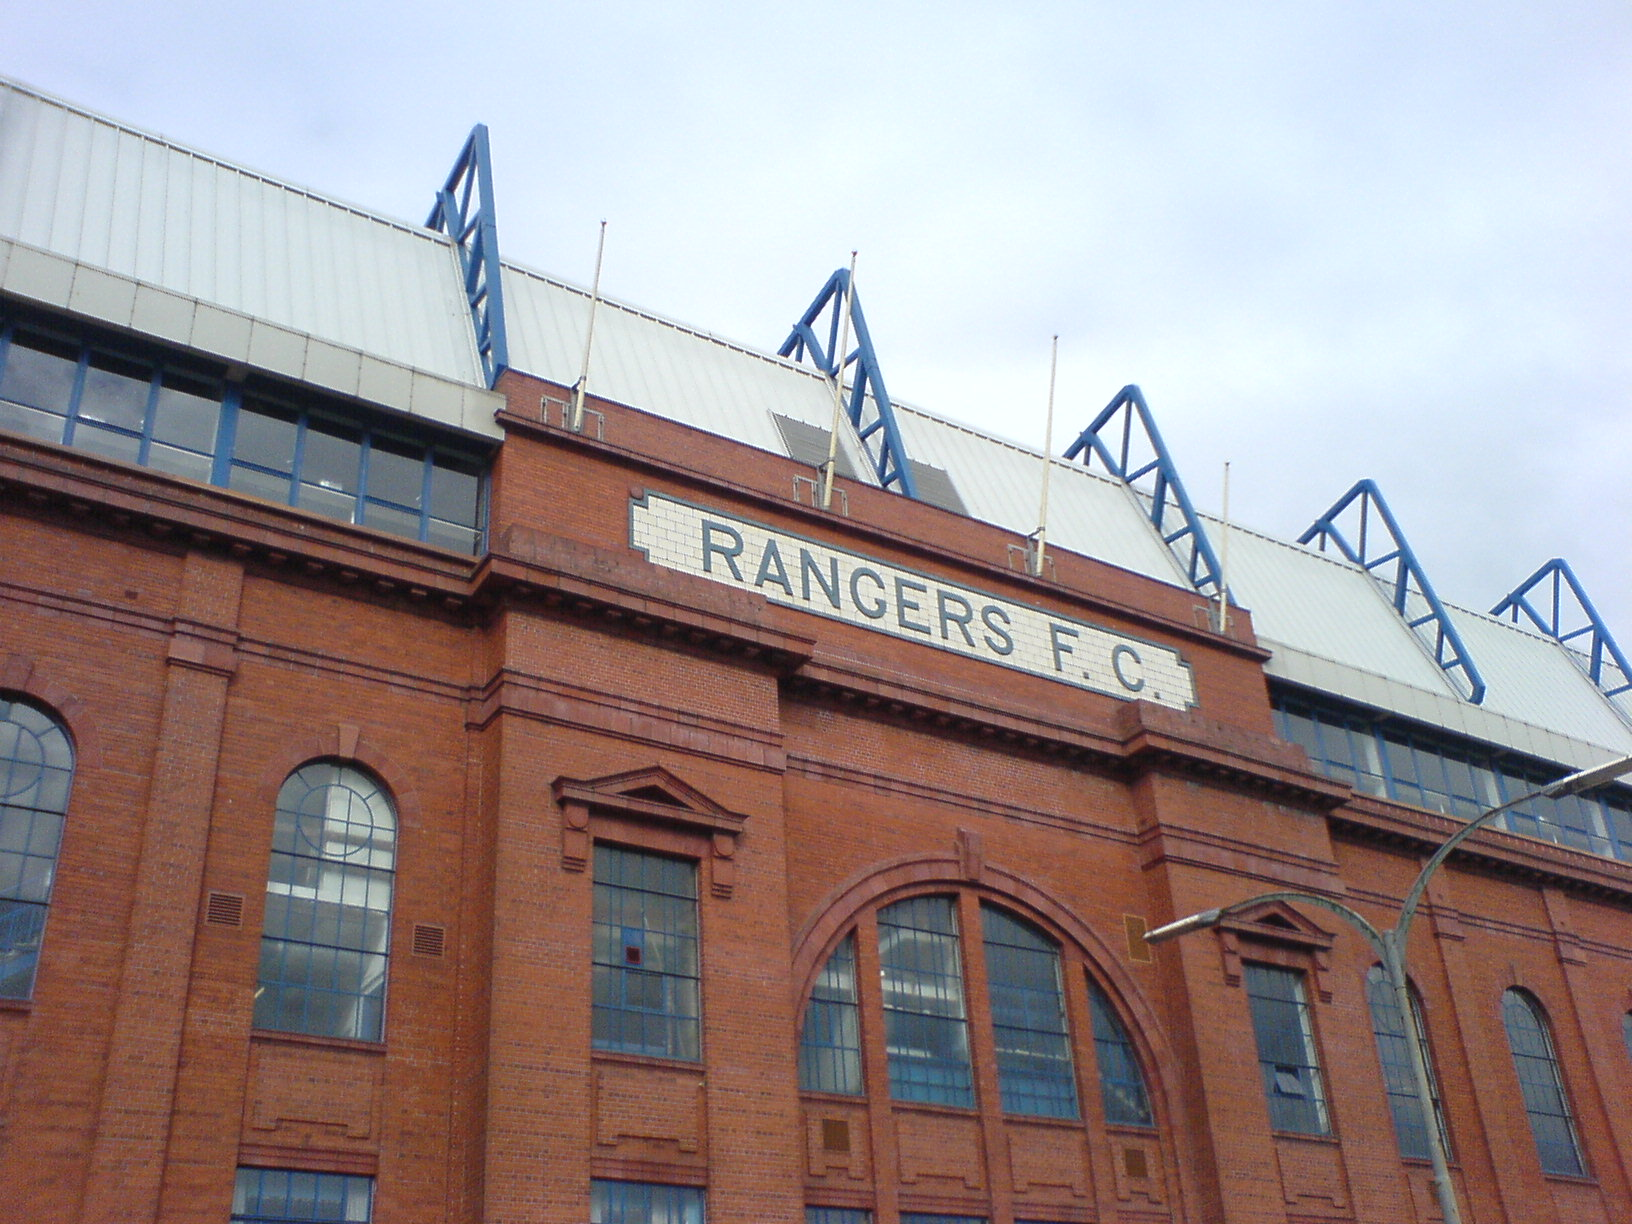 Rangers Football Club uses stock market listing for working capital in wake of bid rumours